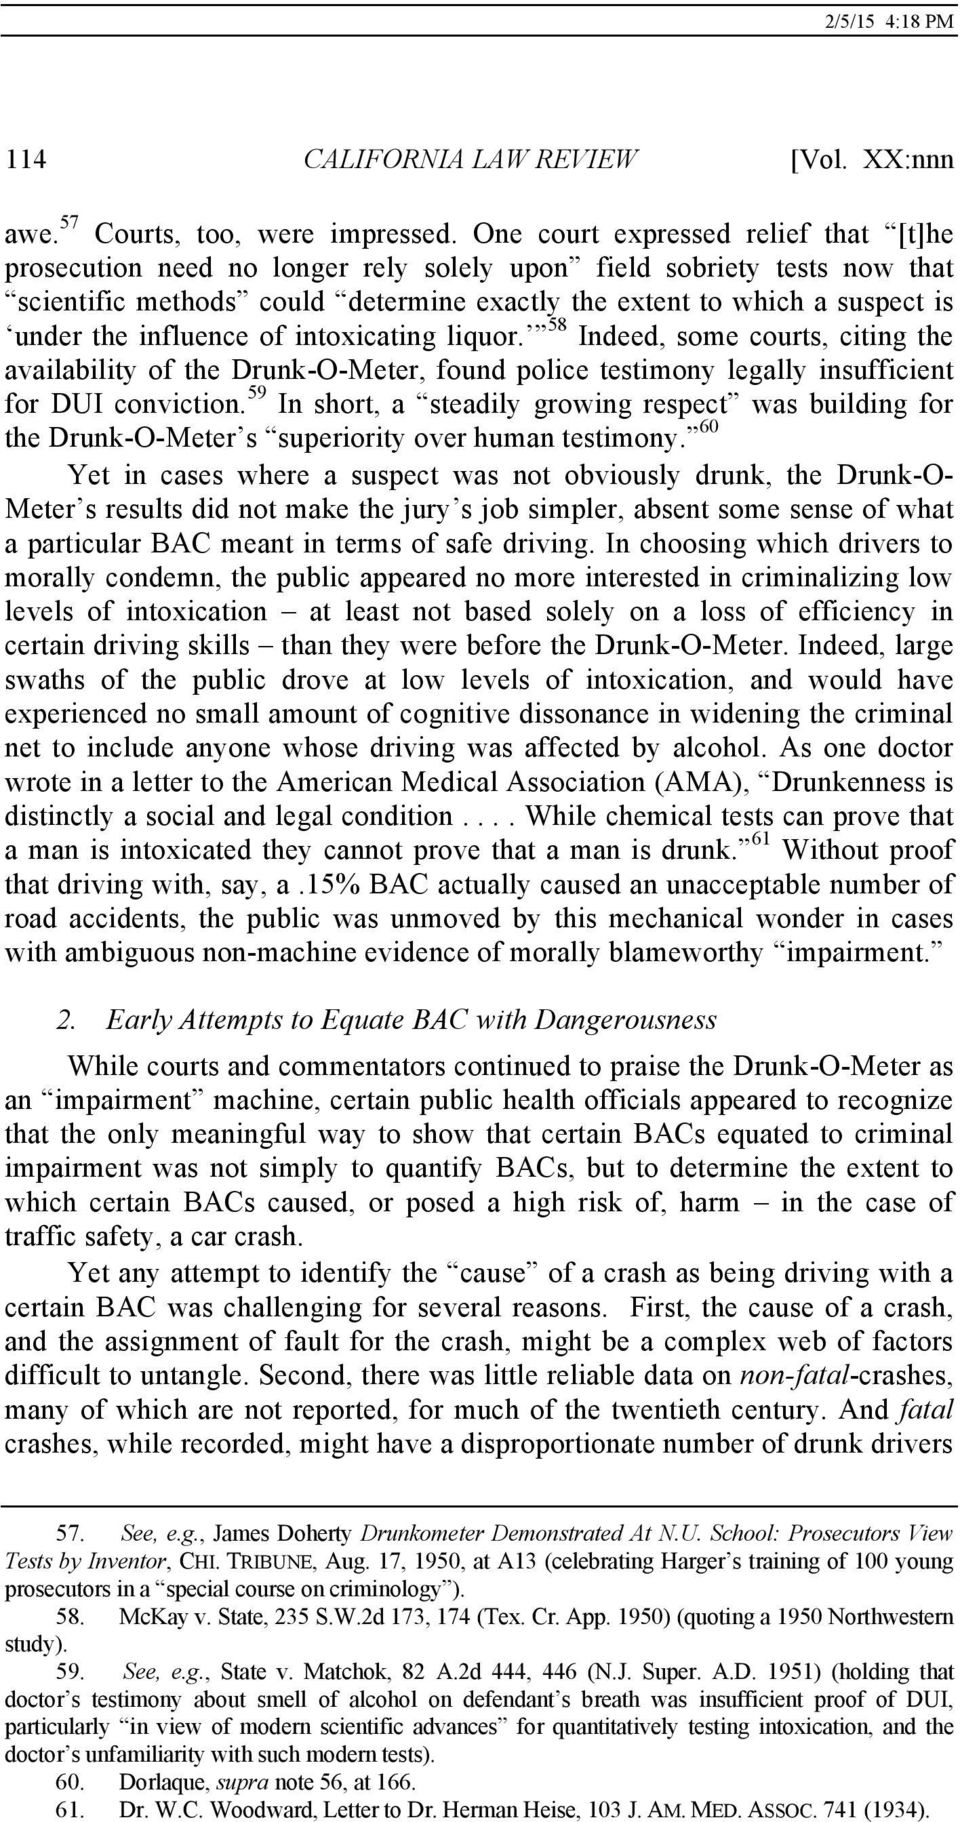 influence of intoxicating liquor. 58 Indeed, some courts, citing the availability of the Drunk-O-Meter, found police testimony legally insufficient for DUI conviction.